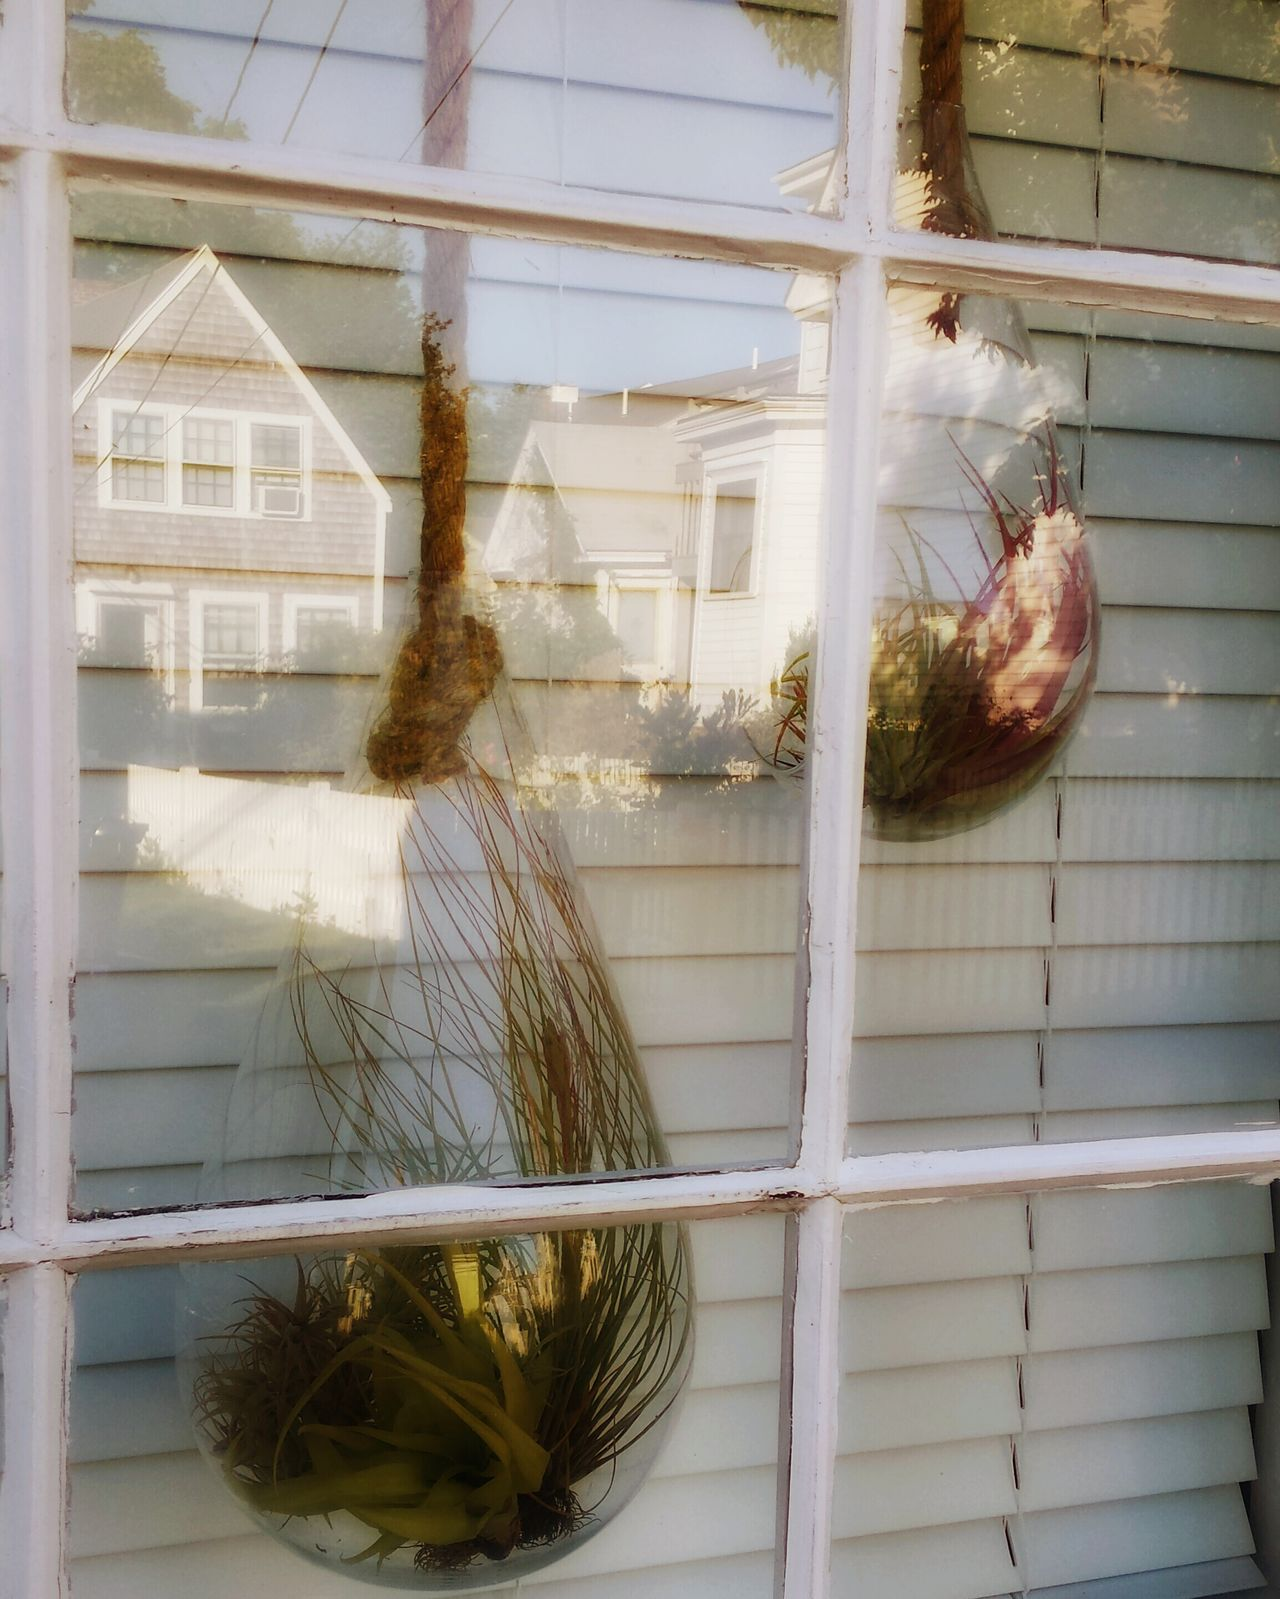 No People Plant Reflection In The Window Provincetown street scene Pivotal Ideas